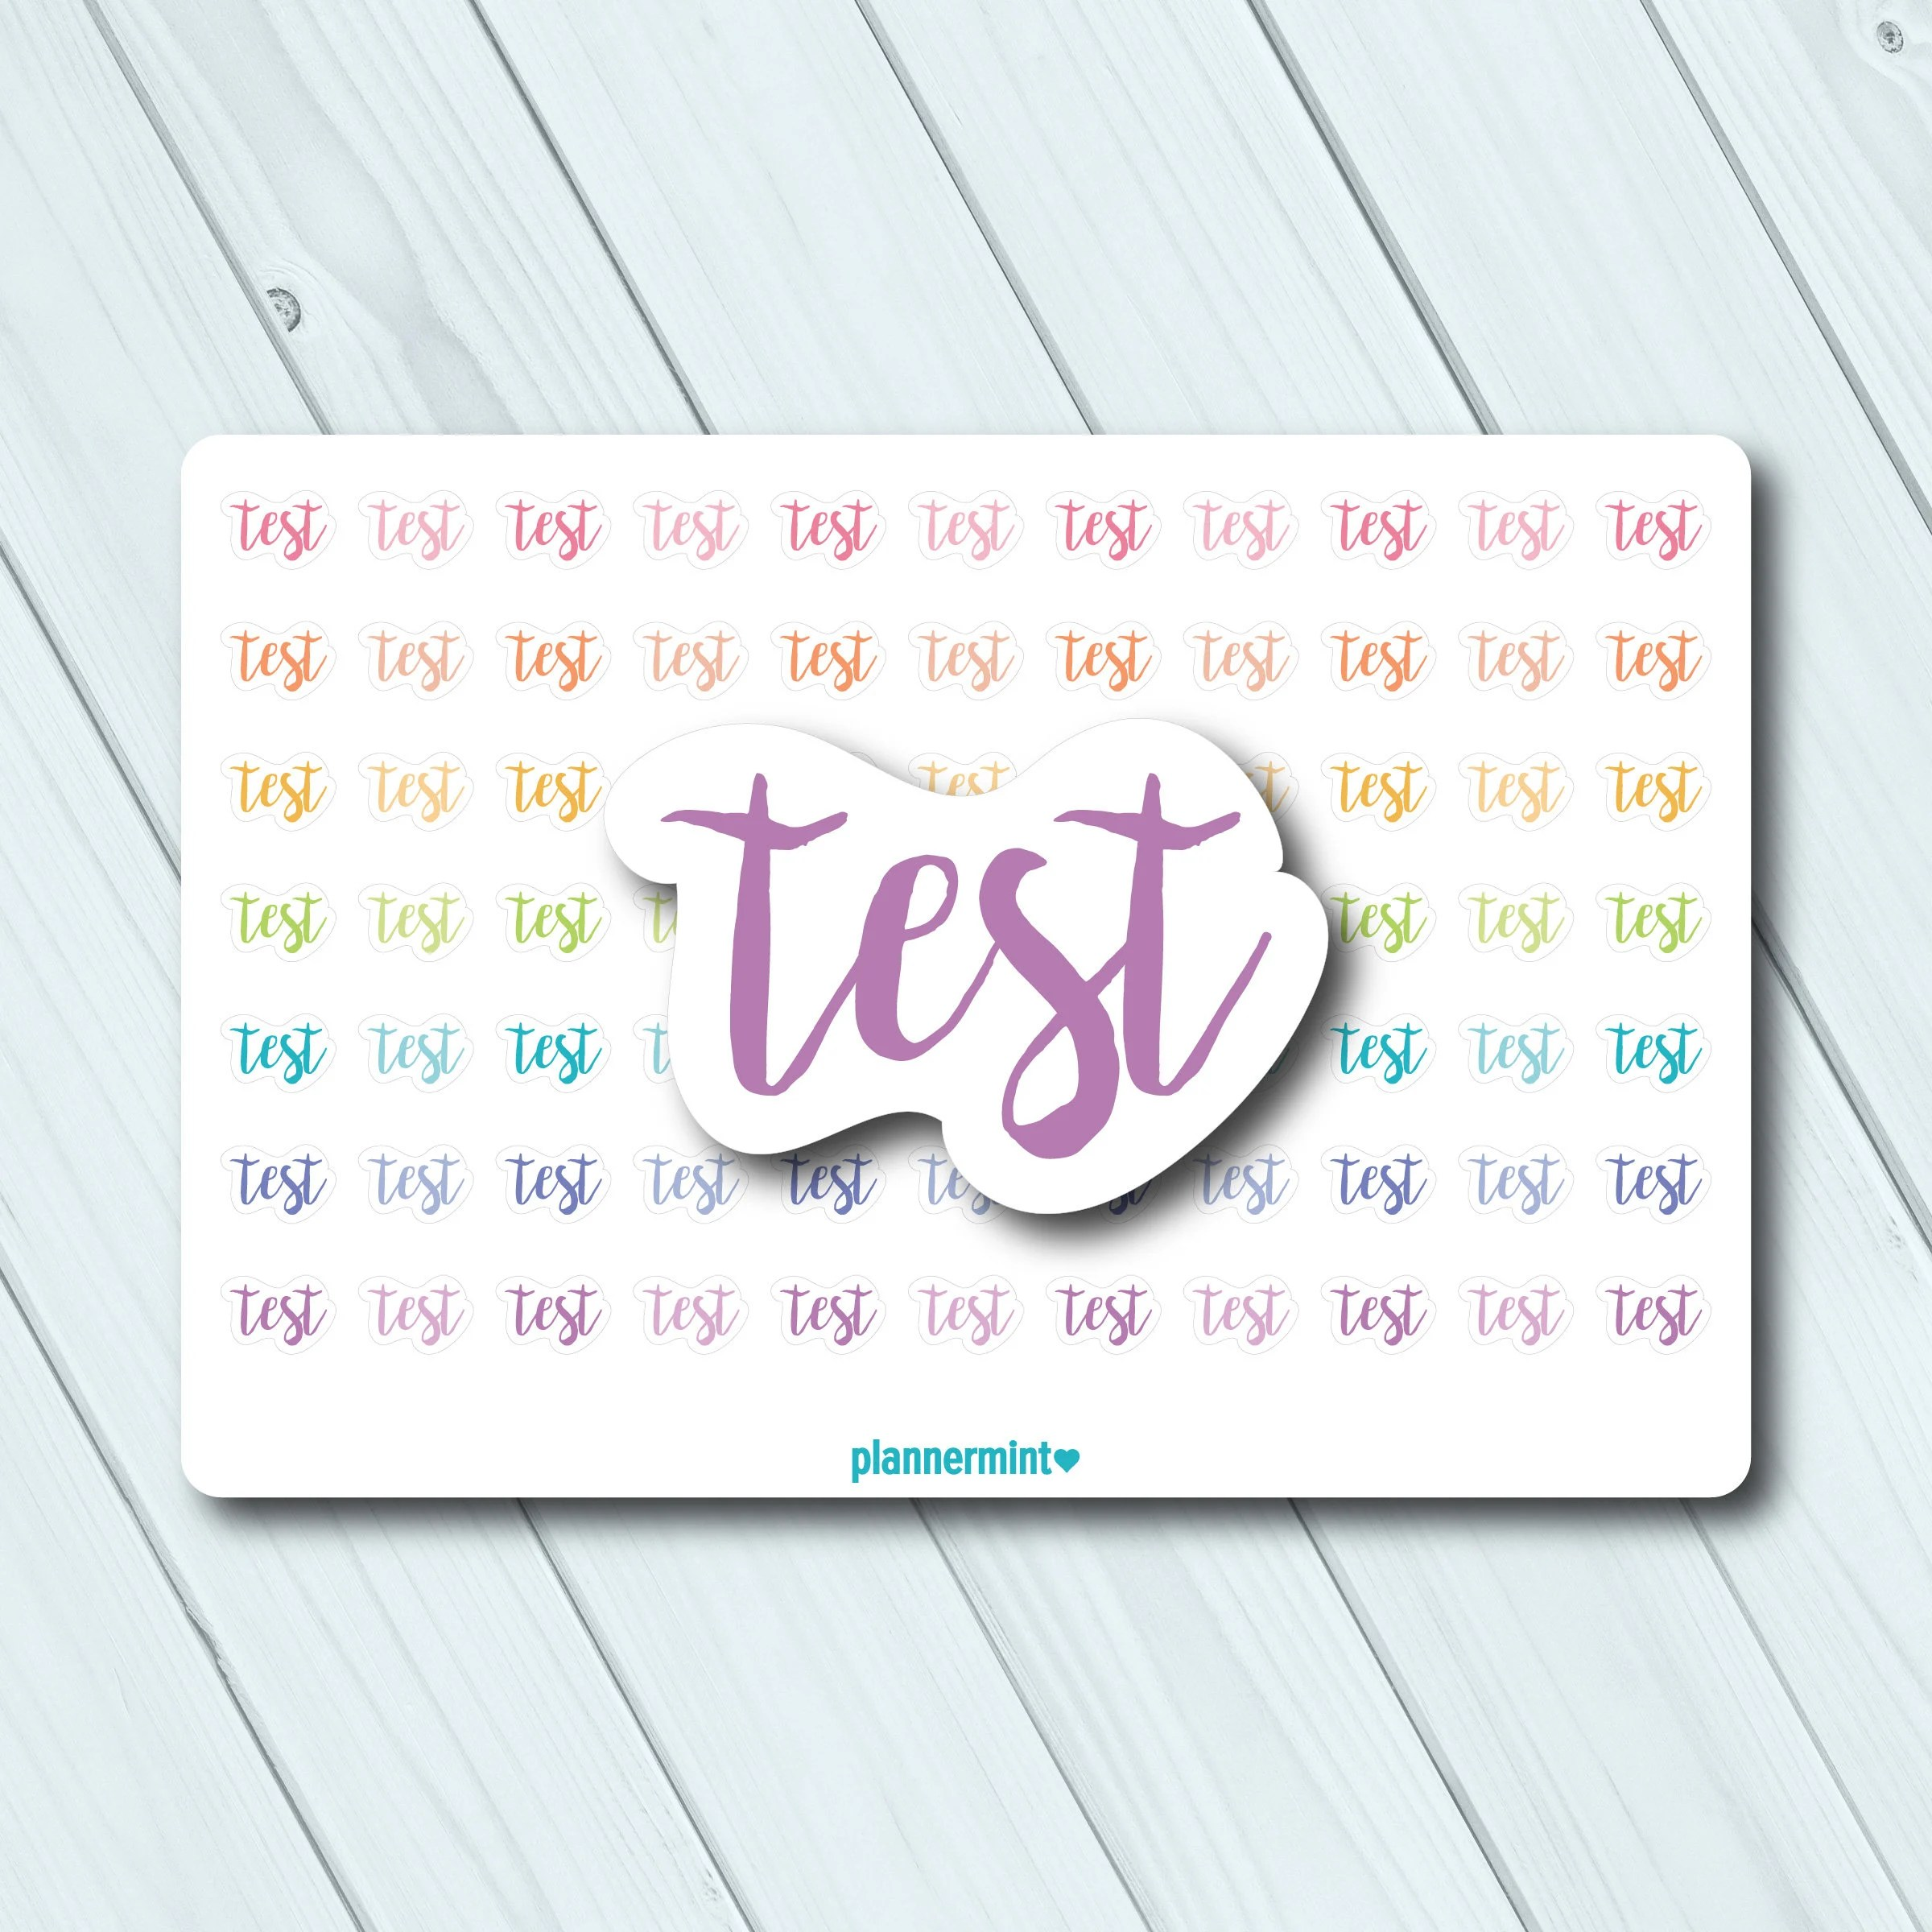 Fitnessmatte Test Test Planner Stickers Word Outline Erin Condren Life Planner Happy Planner School College University Matte Or Glossy